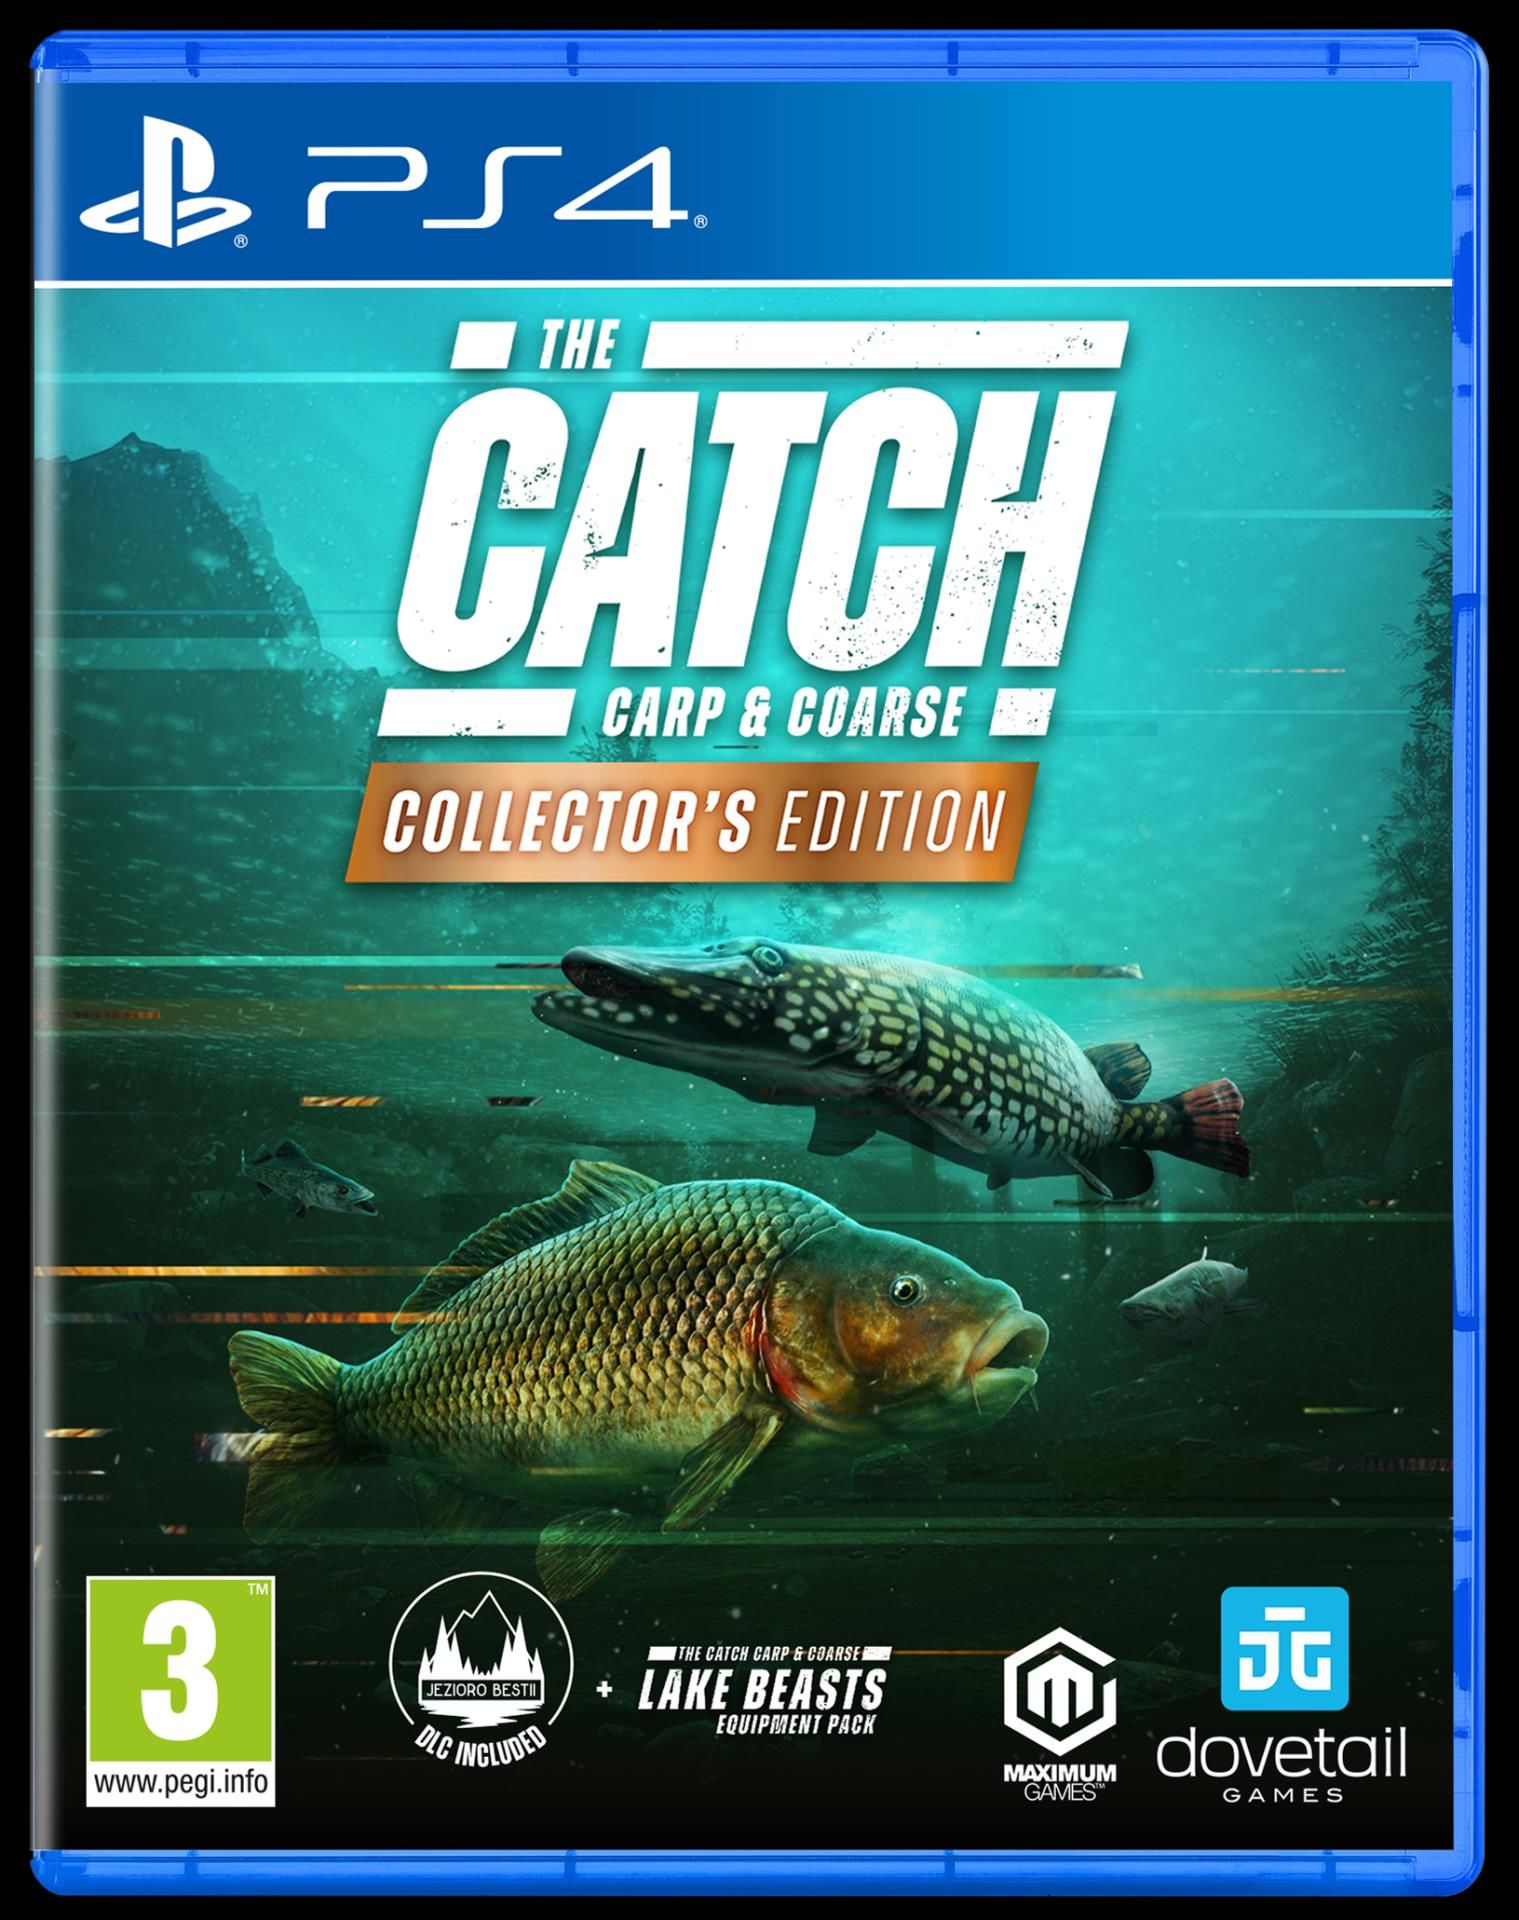 PS4 The Catch Carp & Coarse Collectors Edition